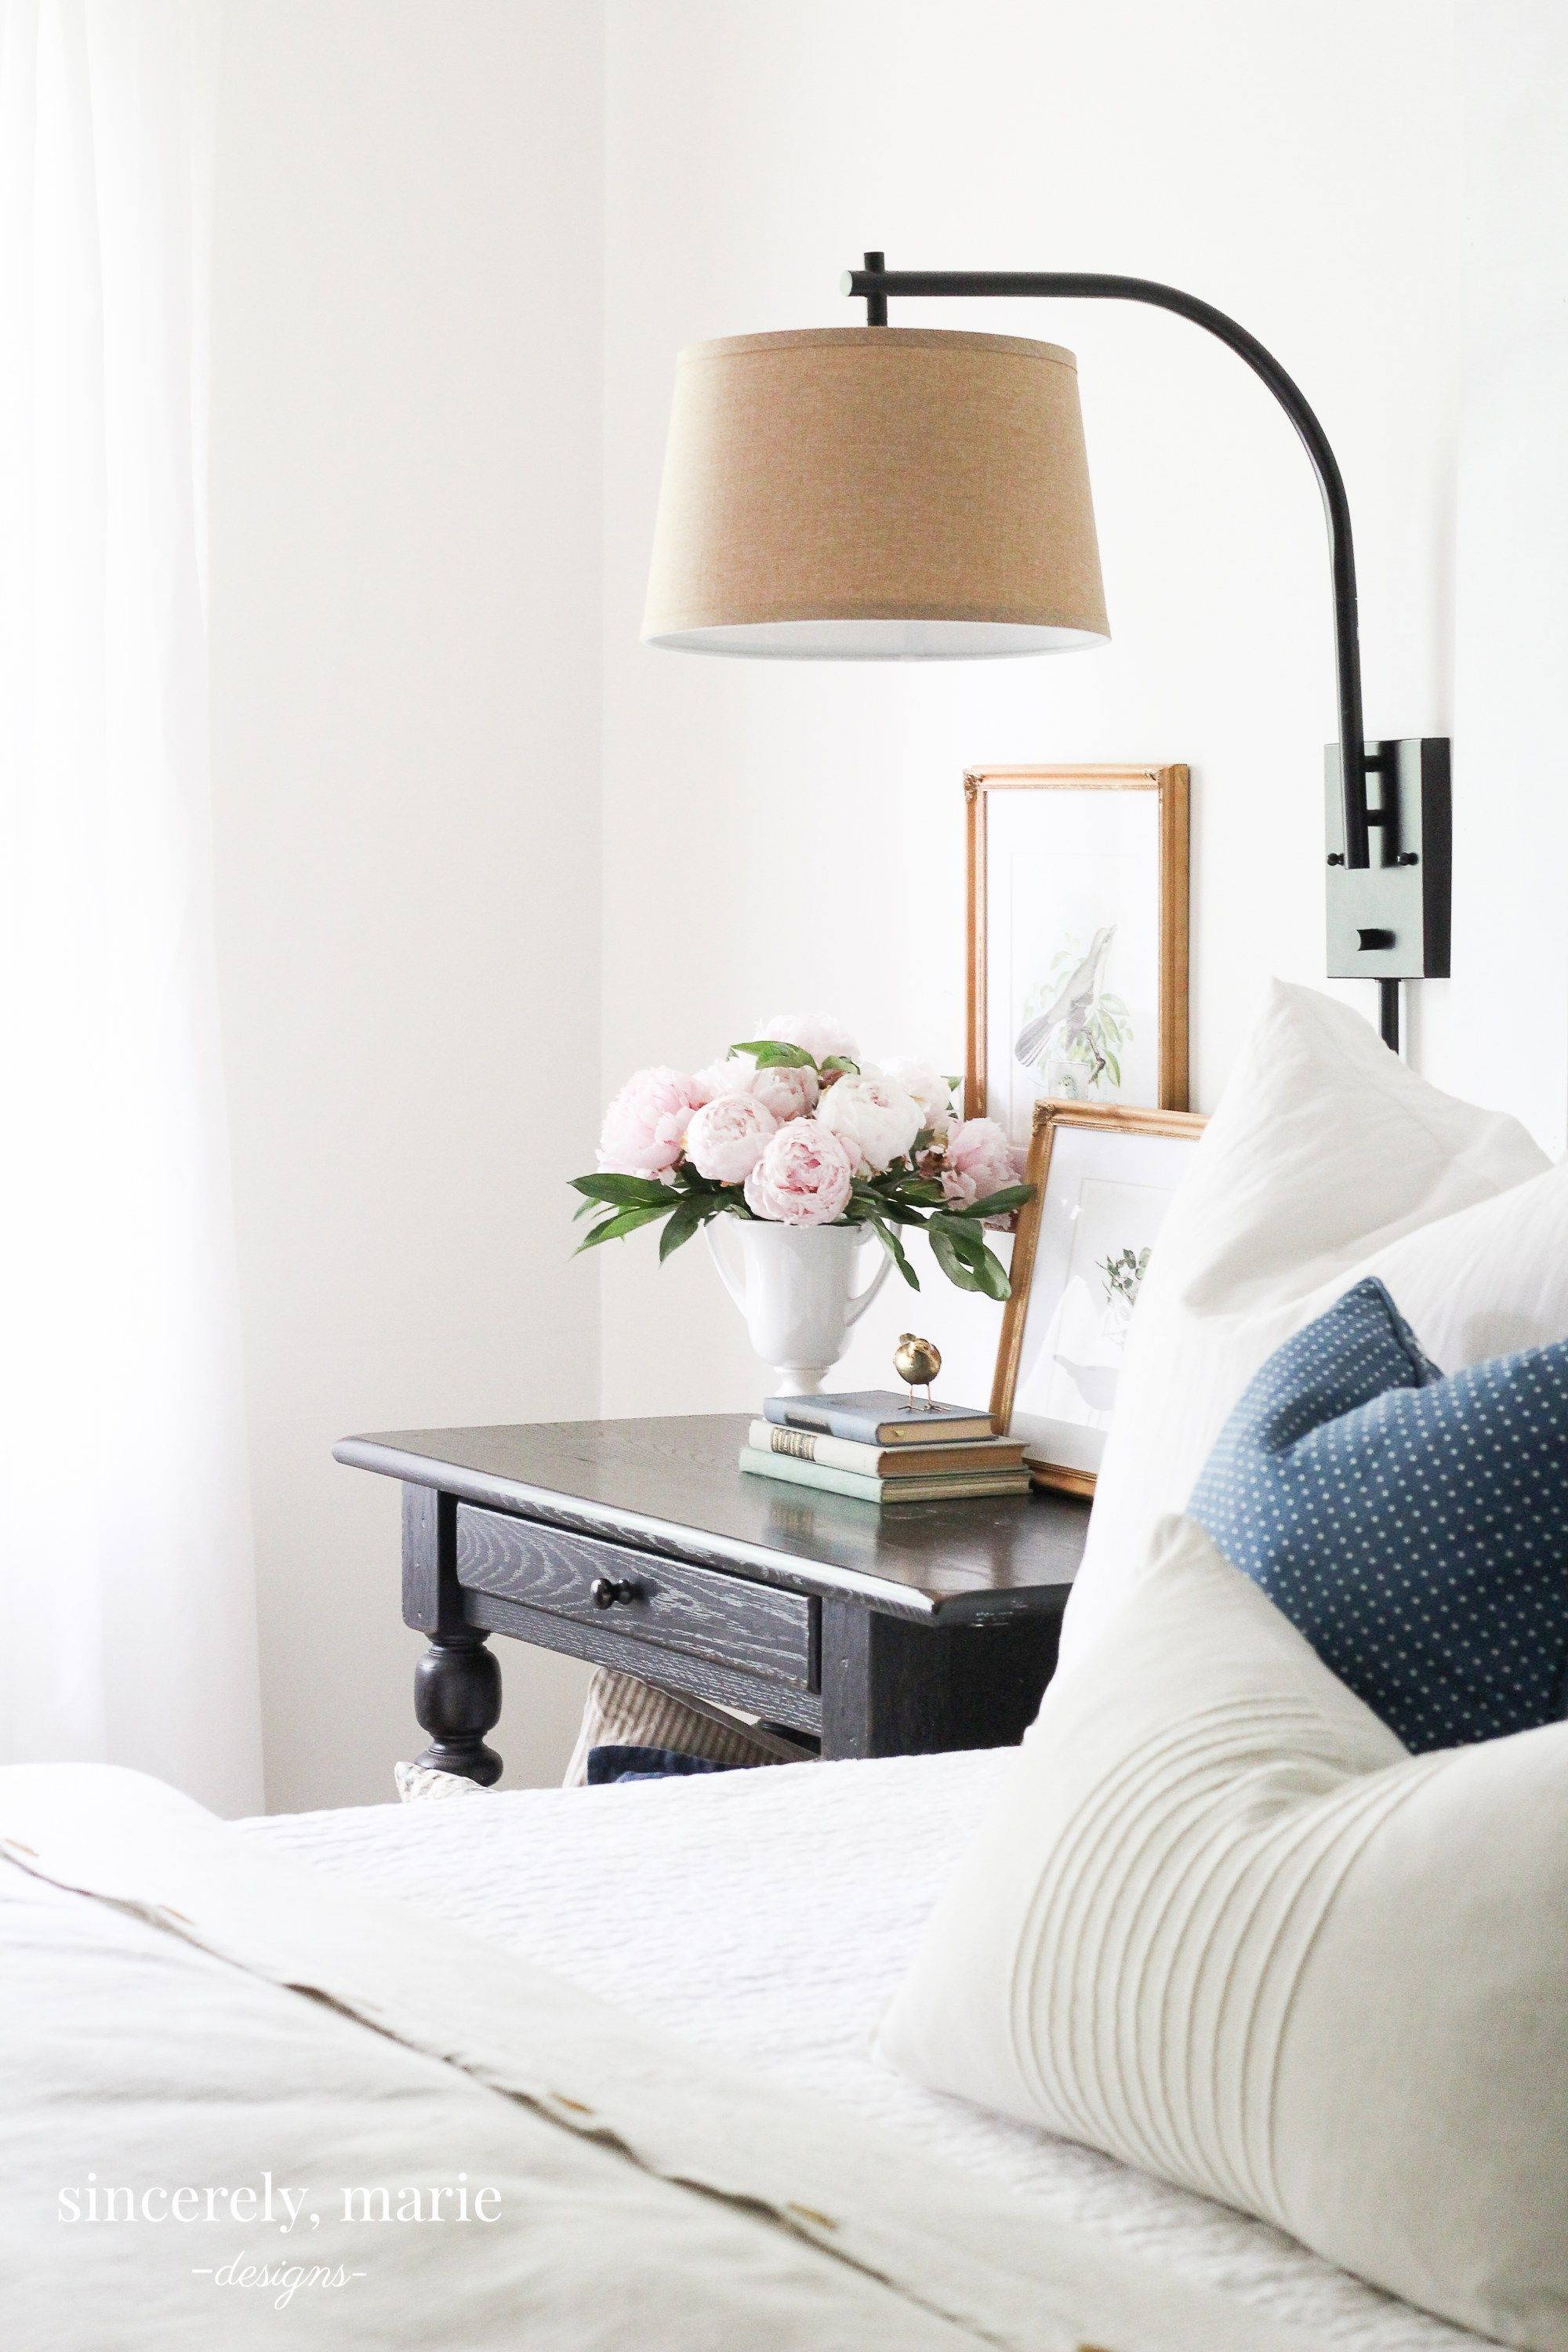 12 Ways to Create a Light & Airy Bedroom - Sincerely, Marie Designs